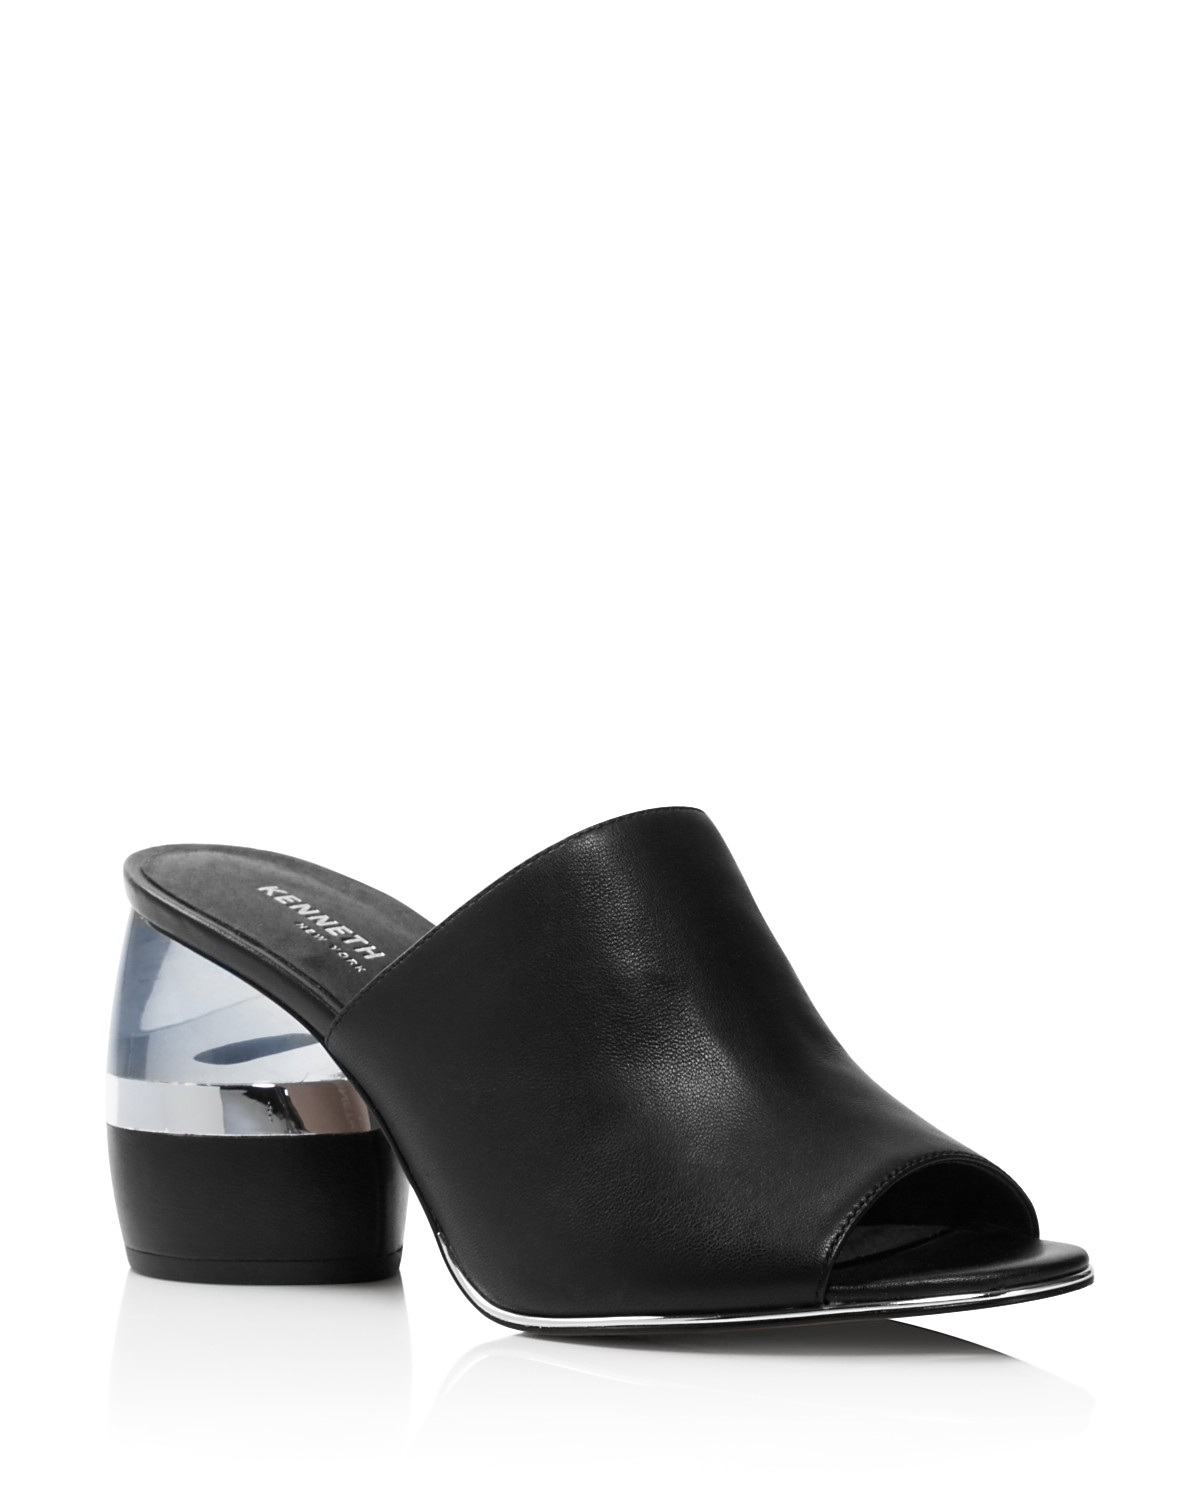 Kenneth Cole Women's Louise Leather & Lucite Heel Mules - 100% Exclusive JZRpQ2dg50